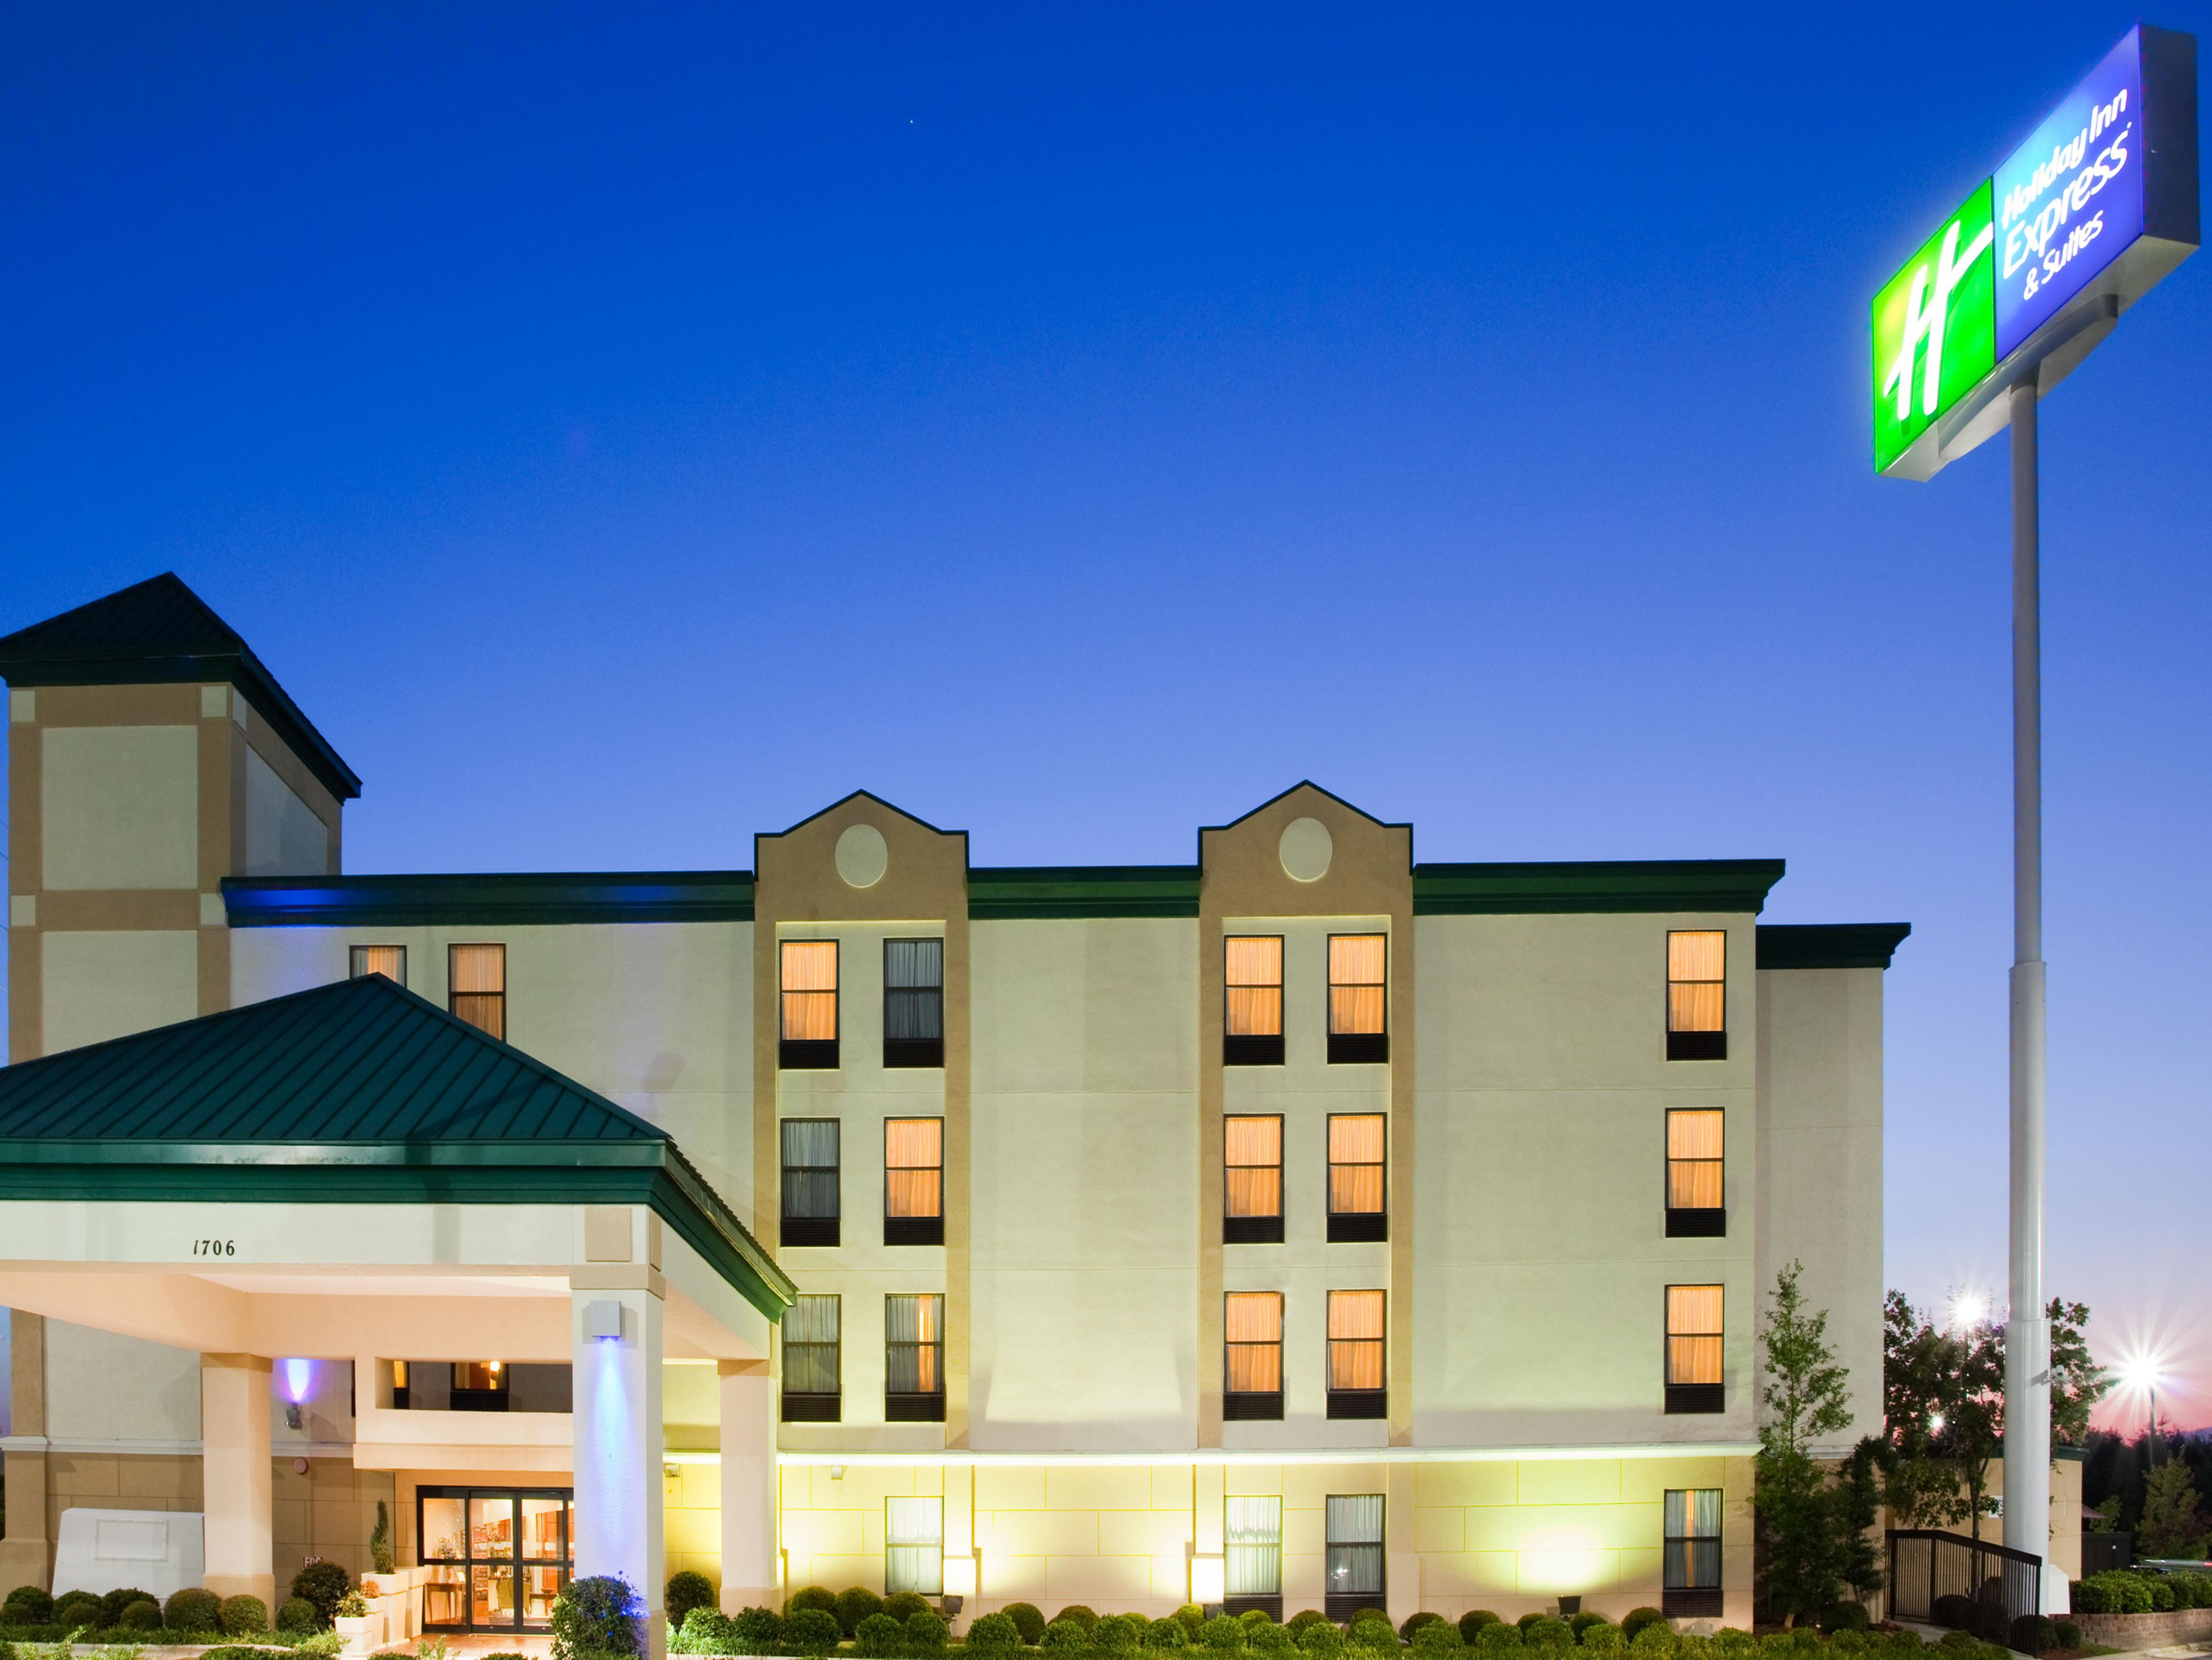 Hotels With Meeting Rooms In Fayetteville Nc